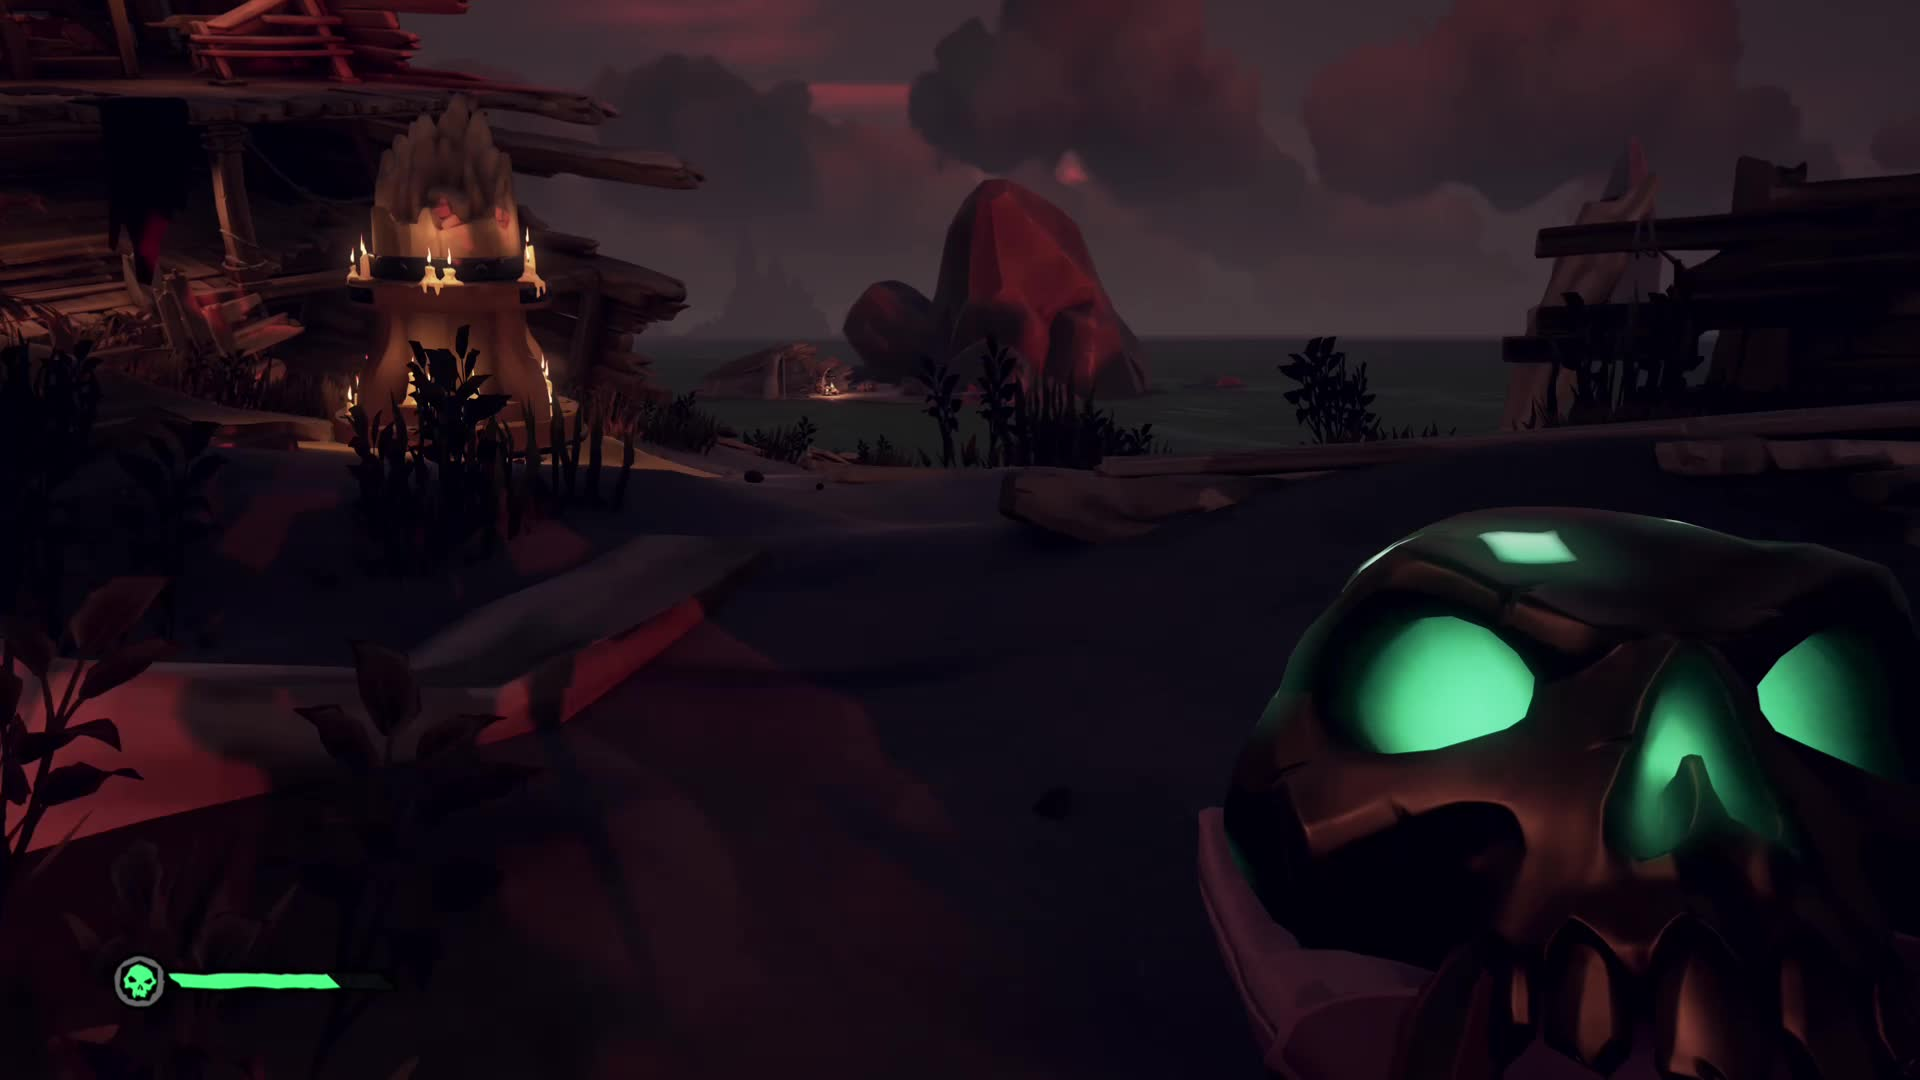 SeaofThieves, gamer dvr, hubi972, xbox, xbox one, lol GIFs